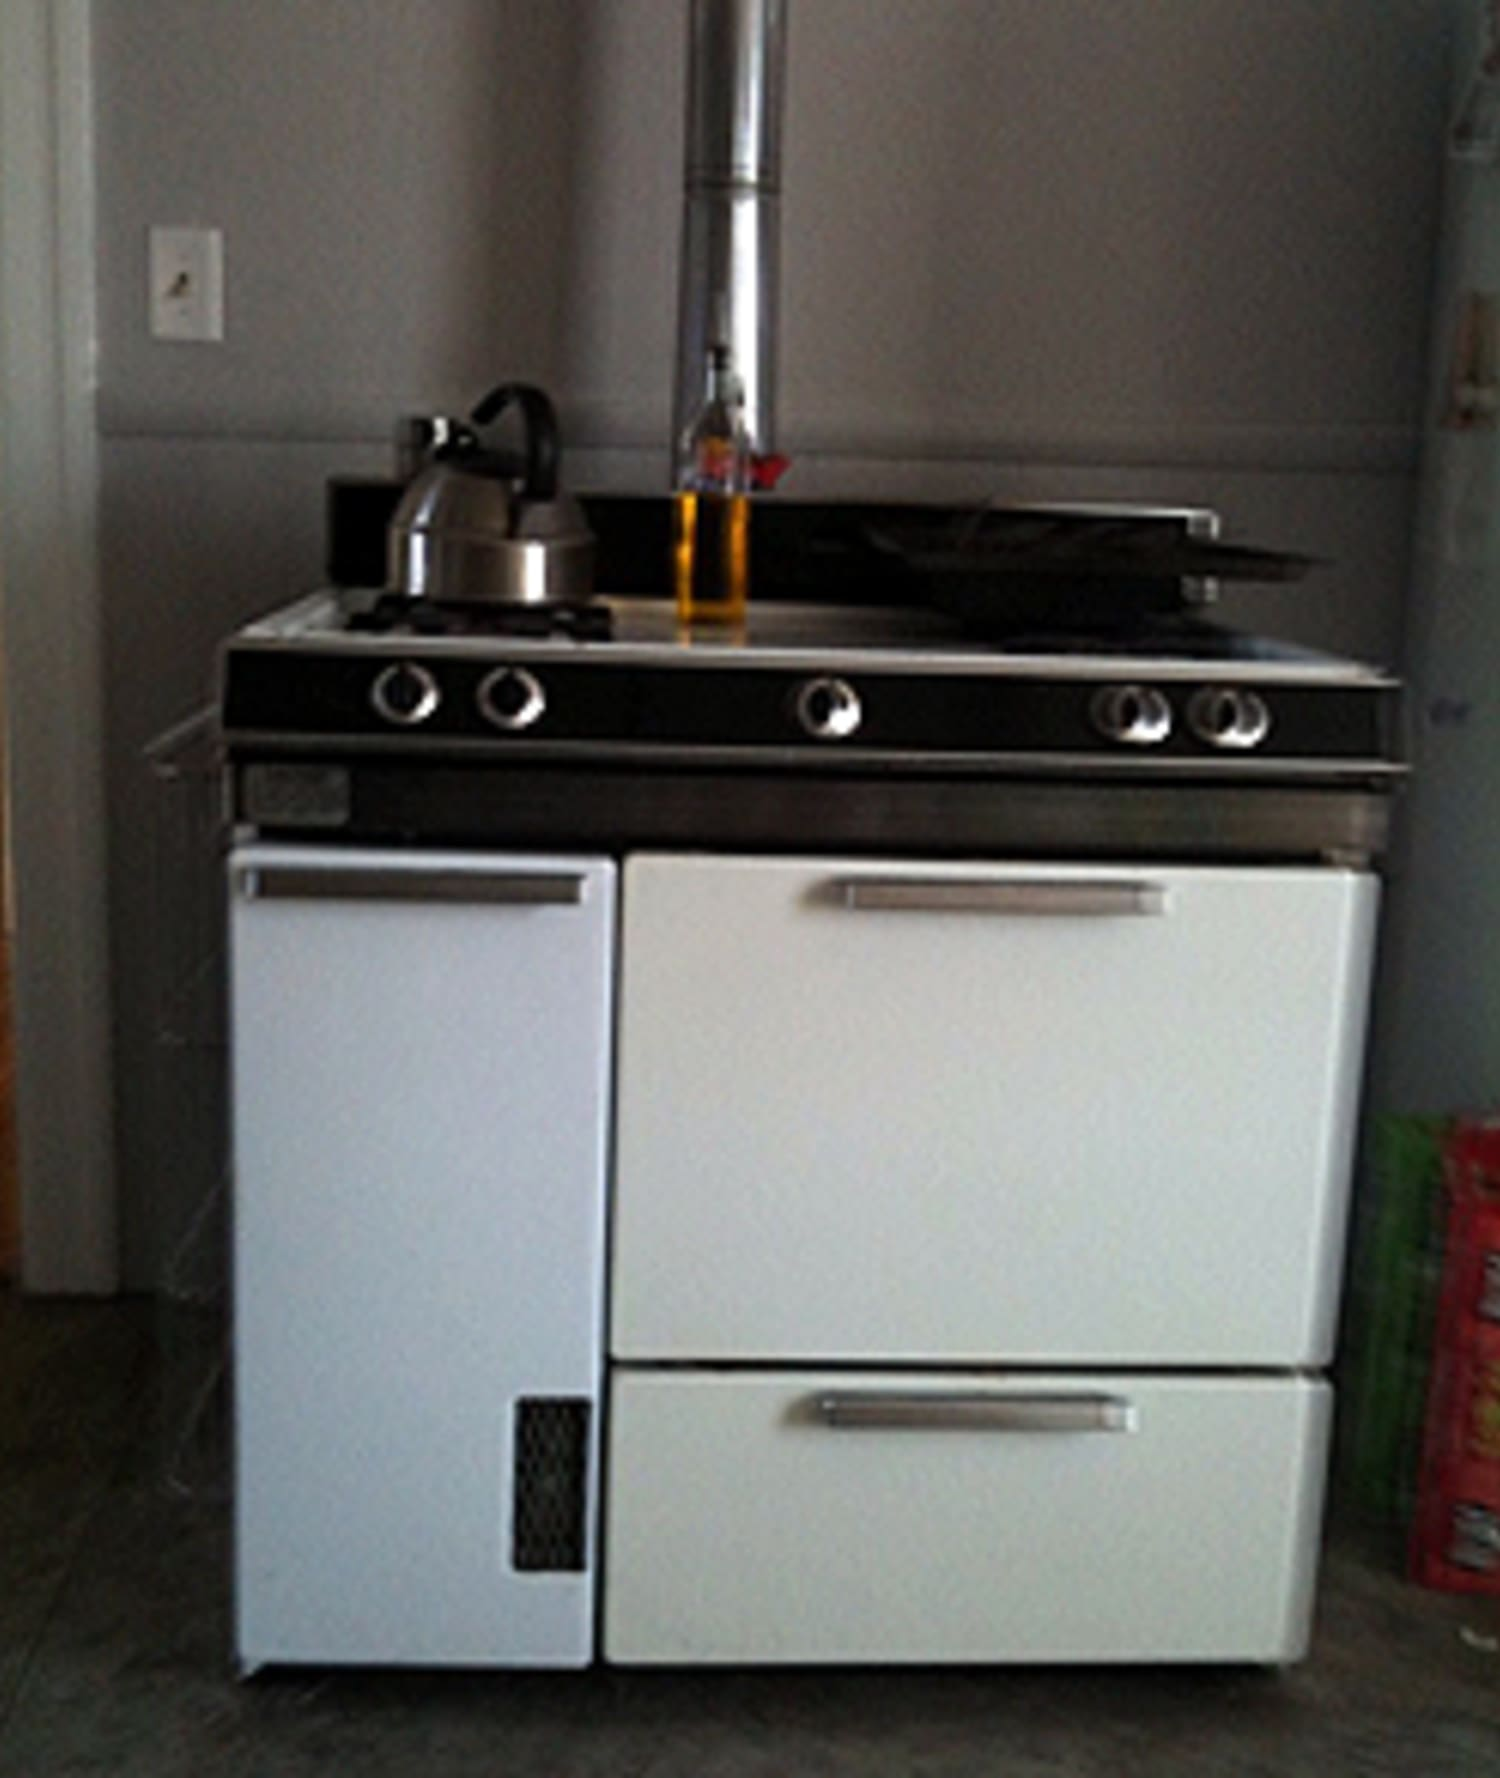 Can You Recommend A Good Countertop Convection Oven?